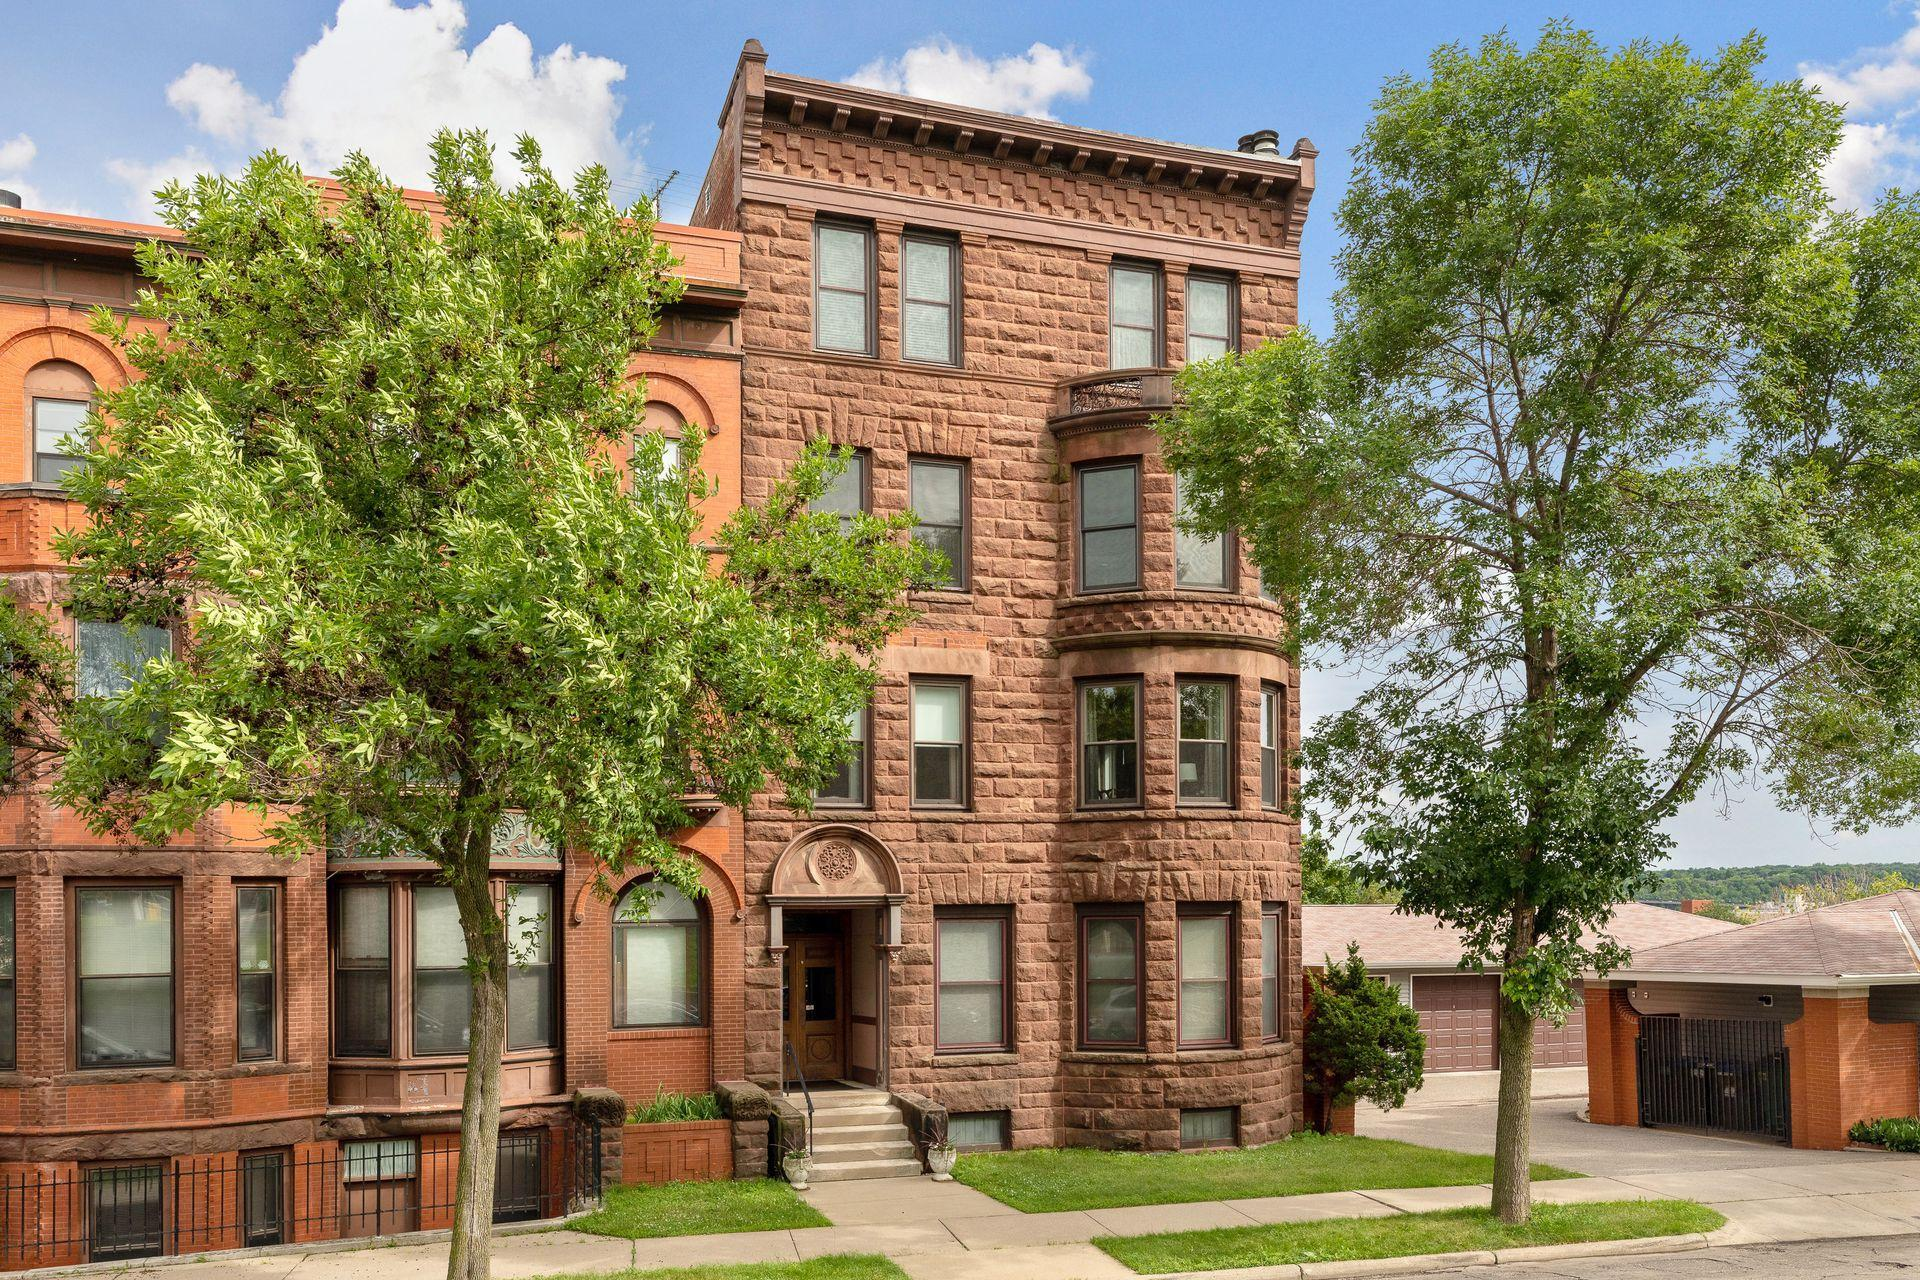 Apt Own No104 College Hill So Real Estate Listings Main Image